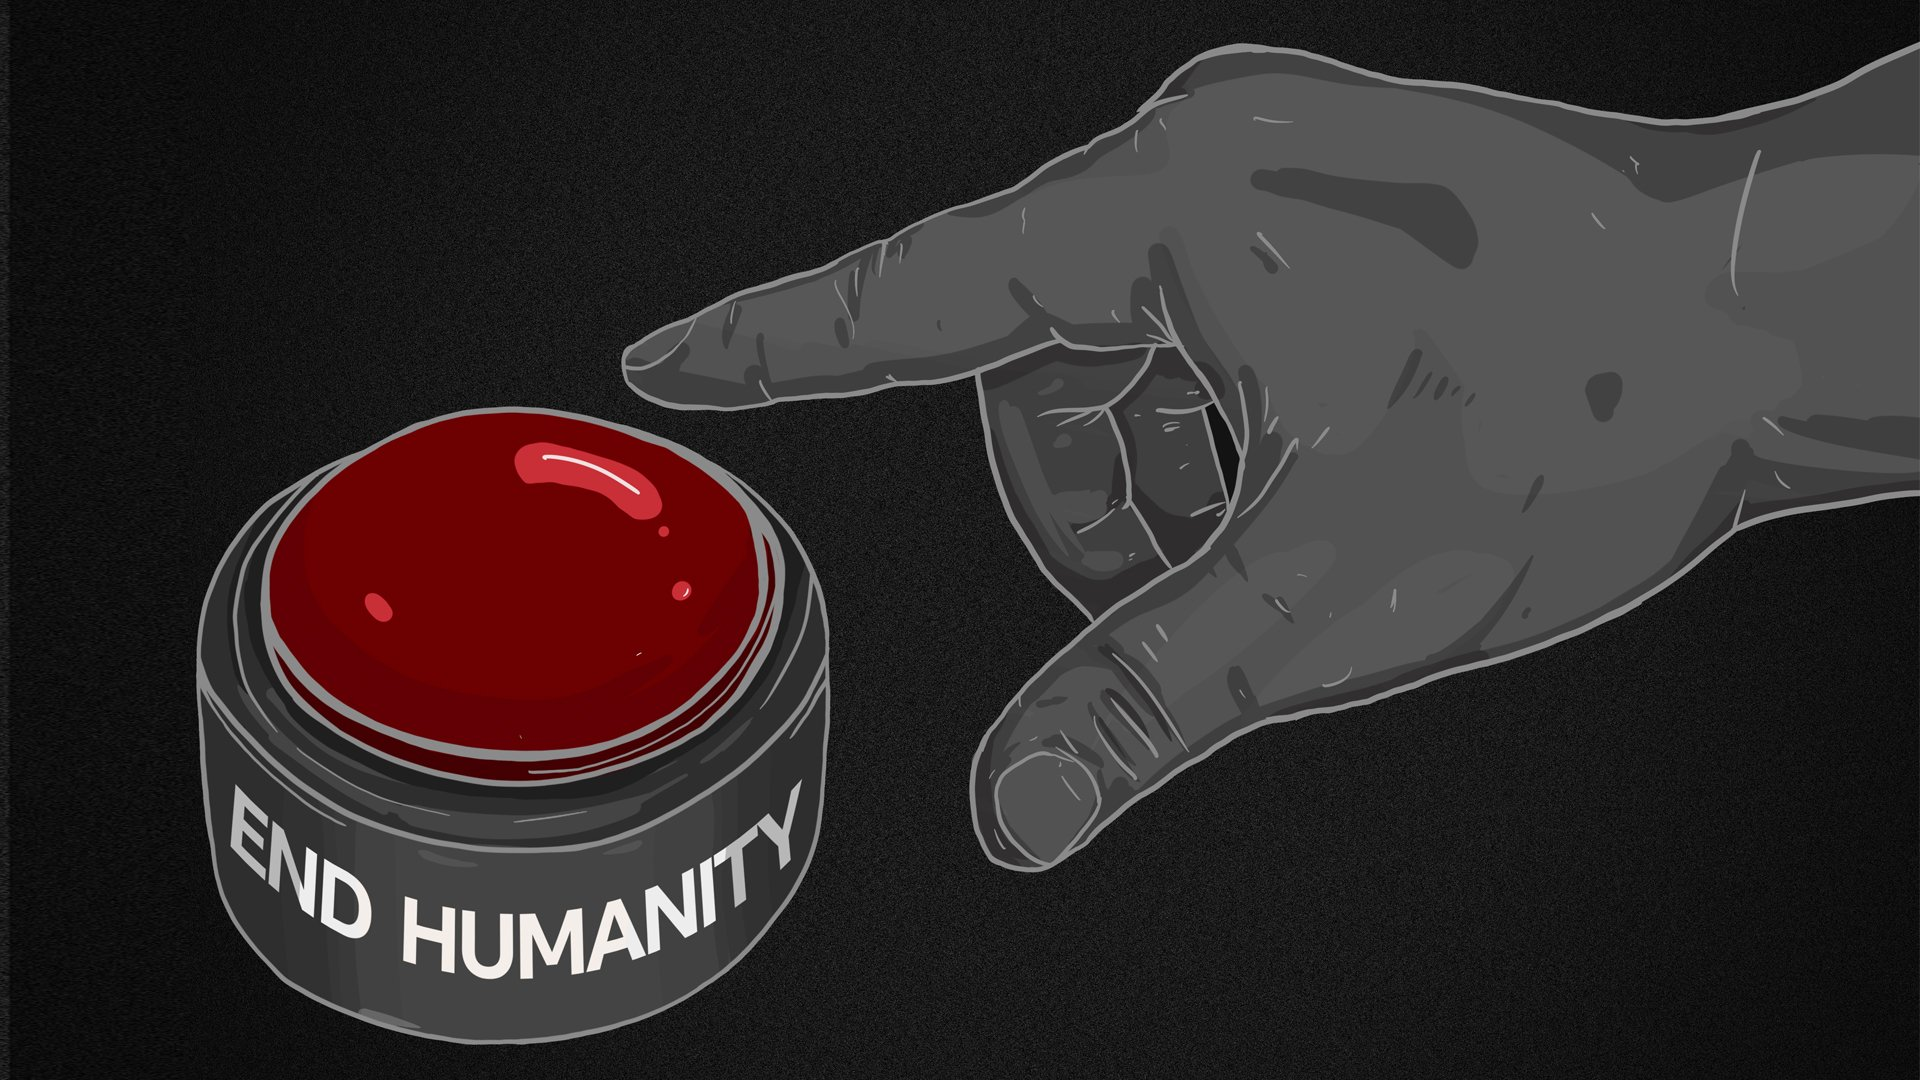 A finger hovering over a end humanity big red button